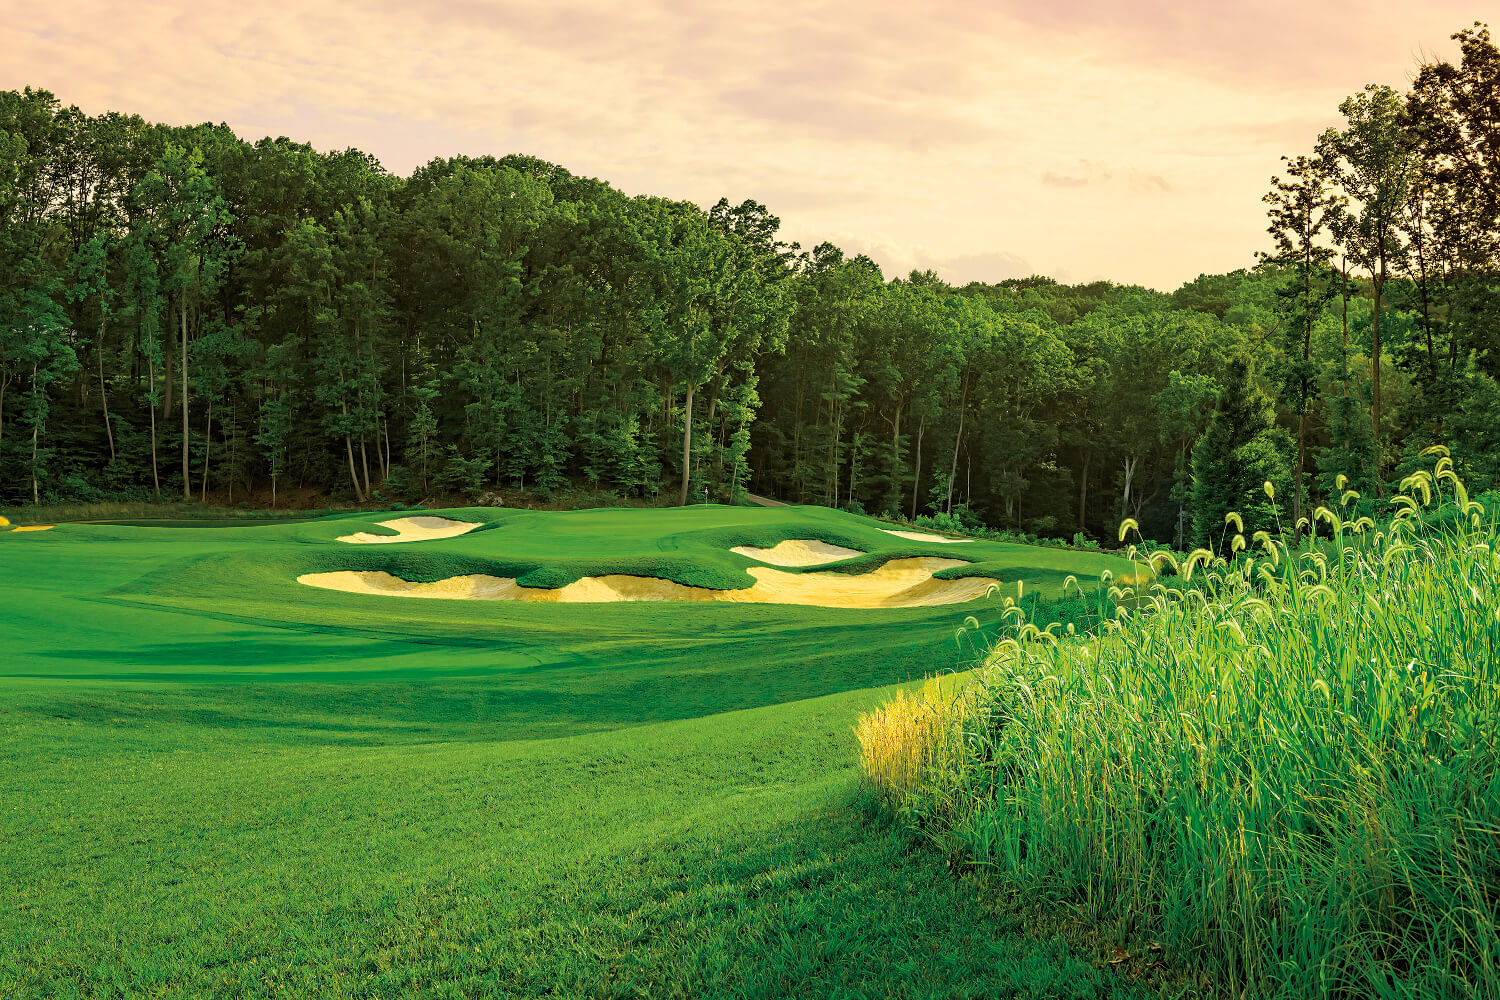 Major Upgrades Planned For Potomac Shores Golf Club